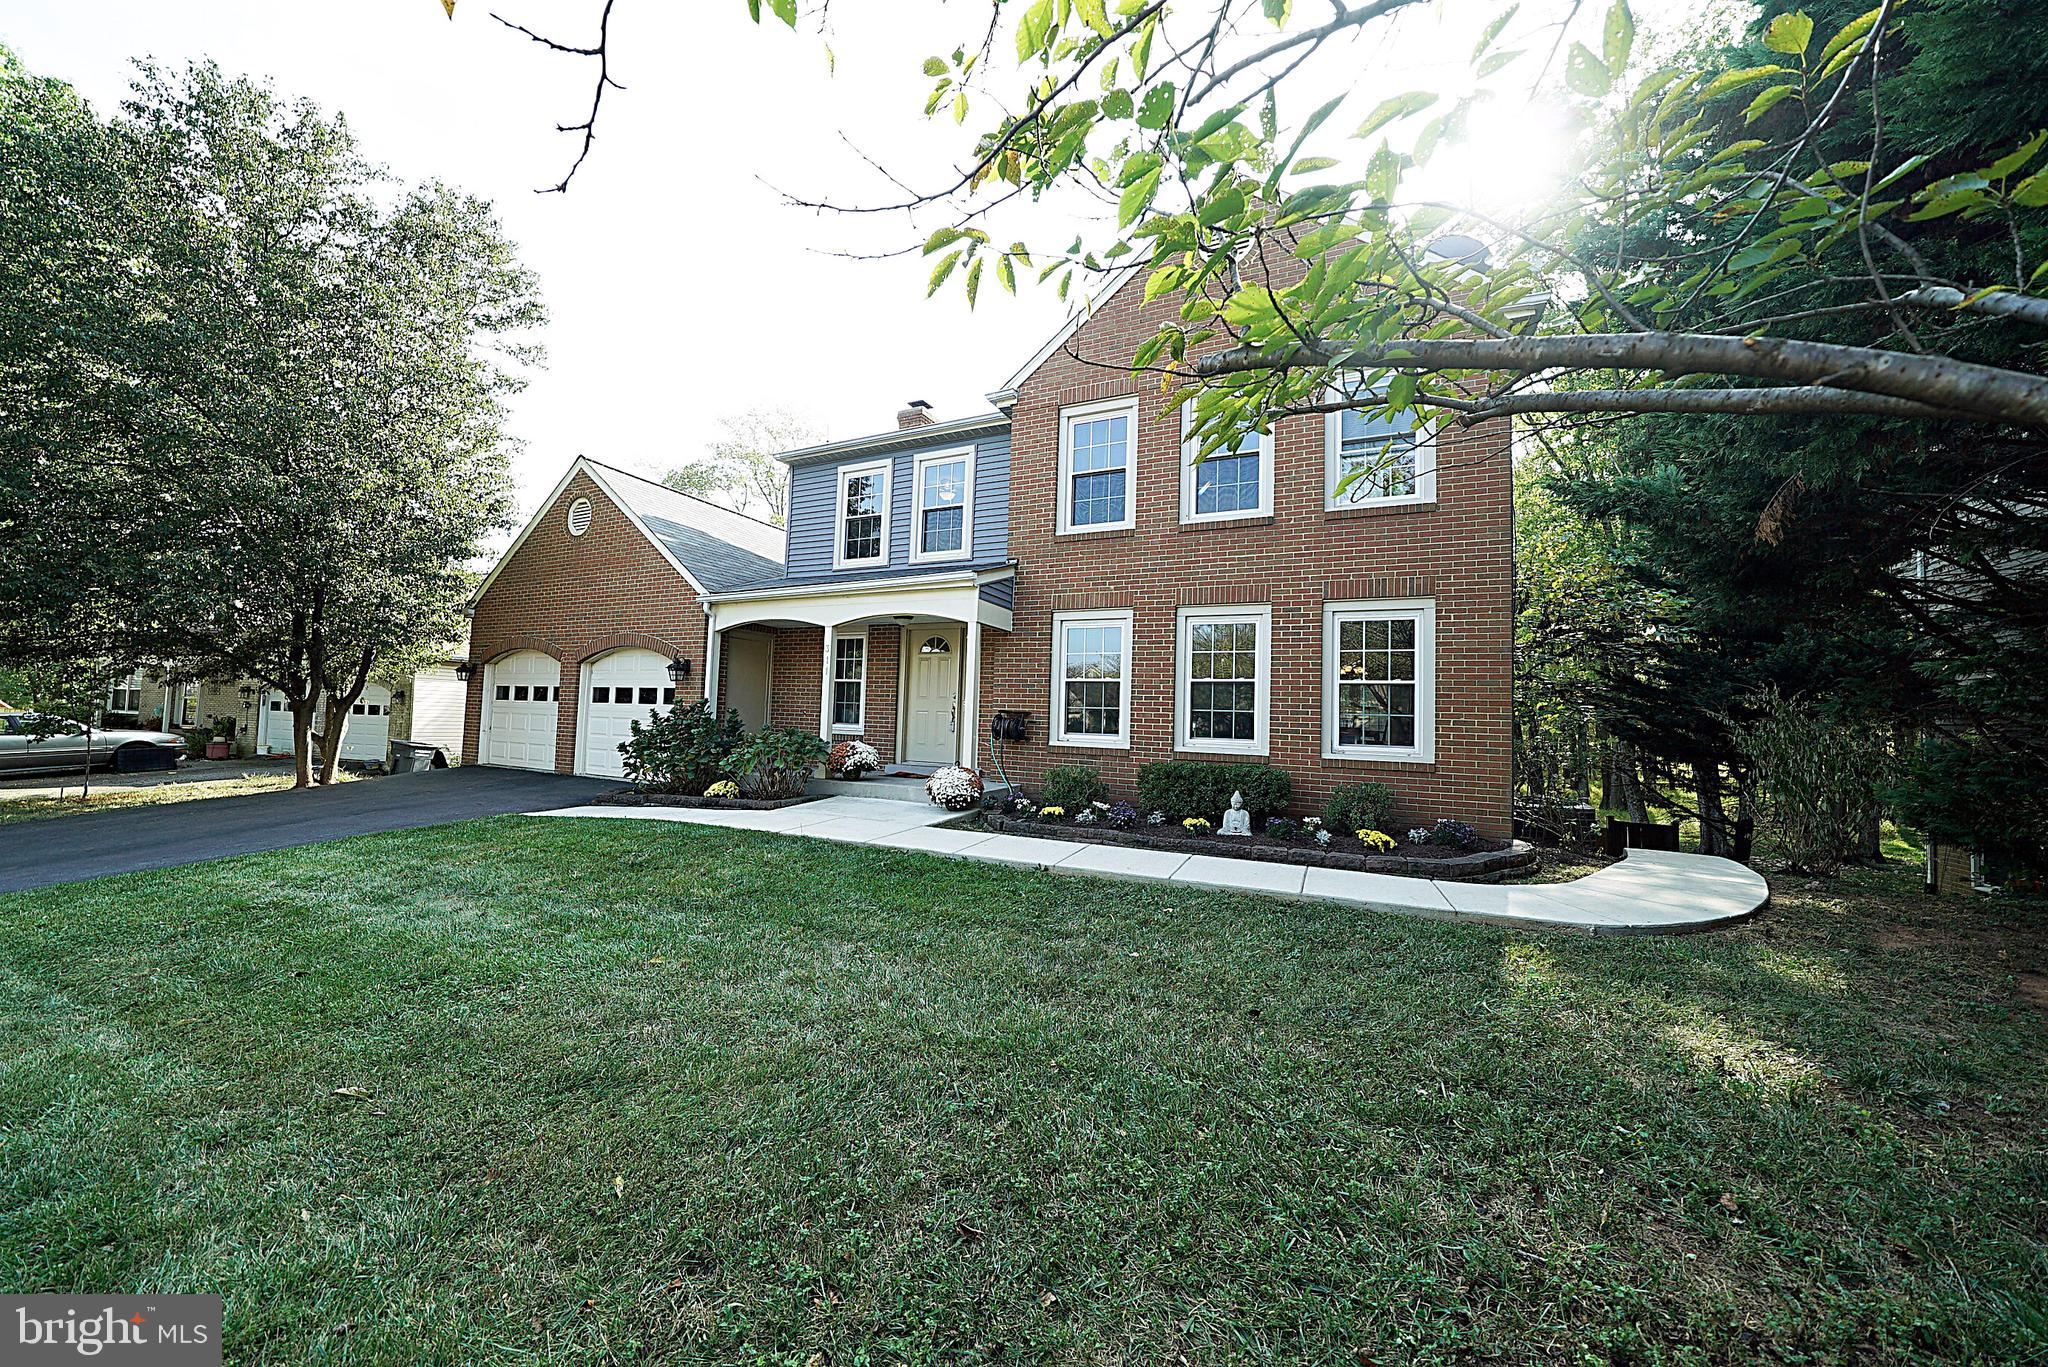 311 TRAMORE COURT, STERLING, VA 20164